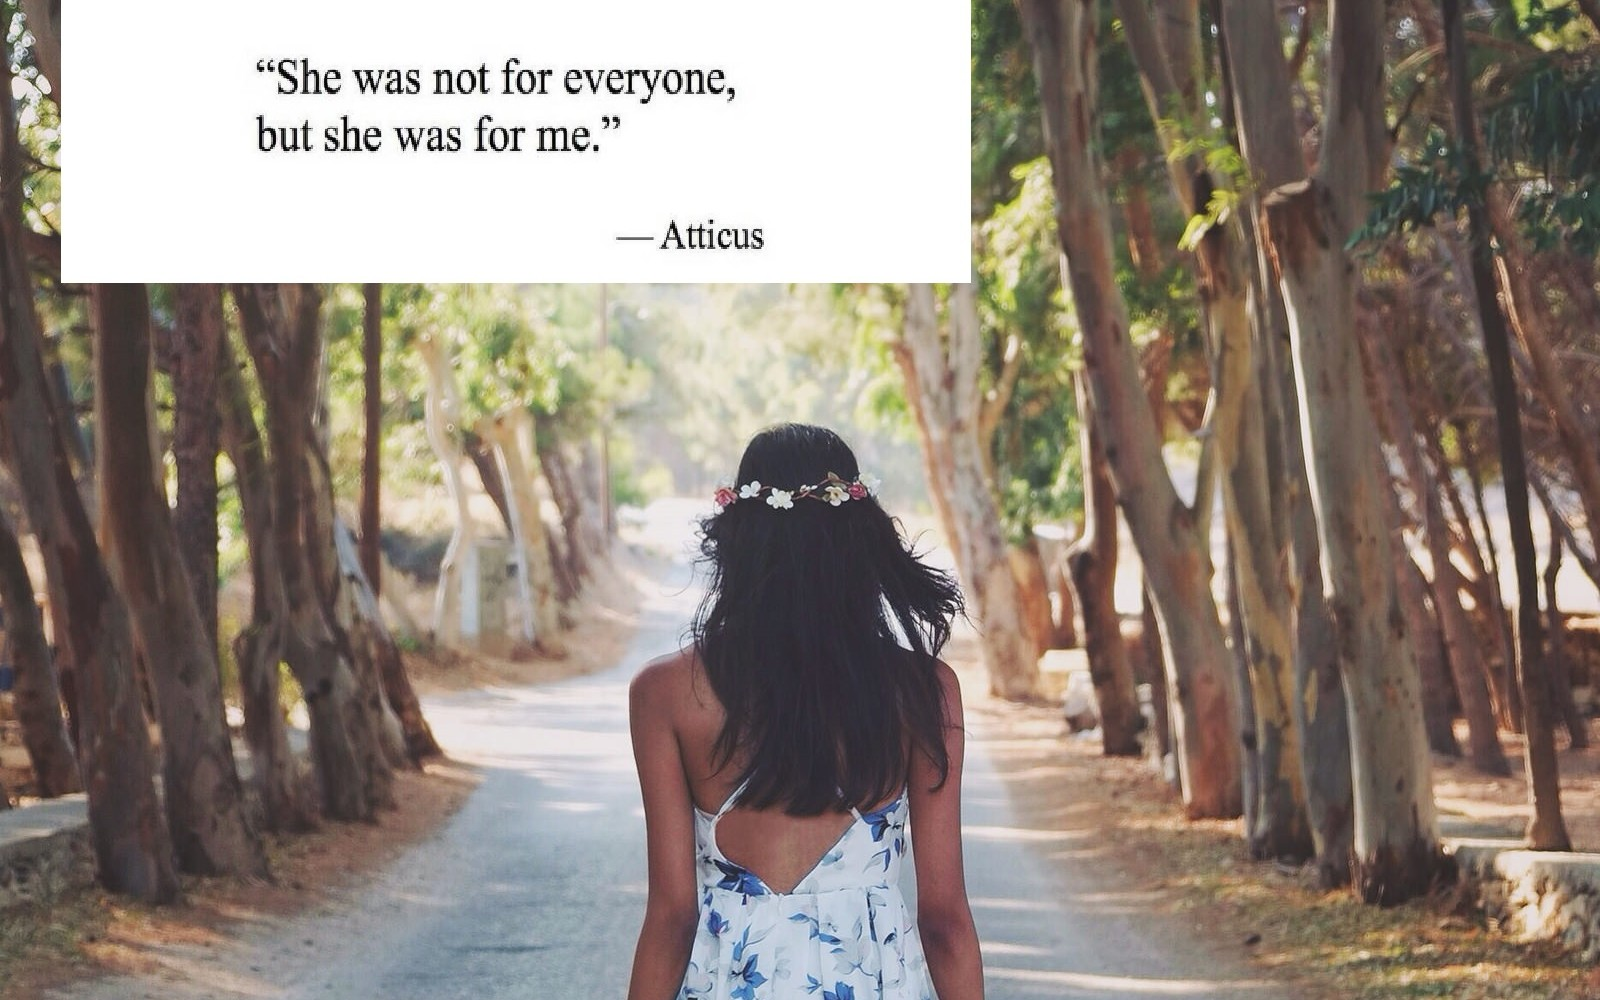 31 Beautiful Poems By Atticus That Will Warm Your Heart And Make You Believe In Love Again